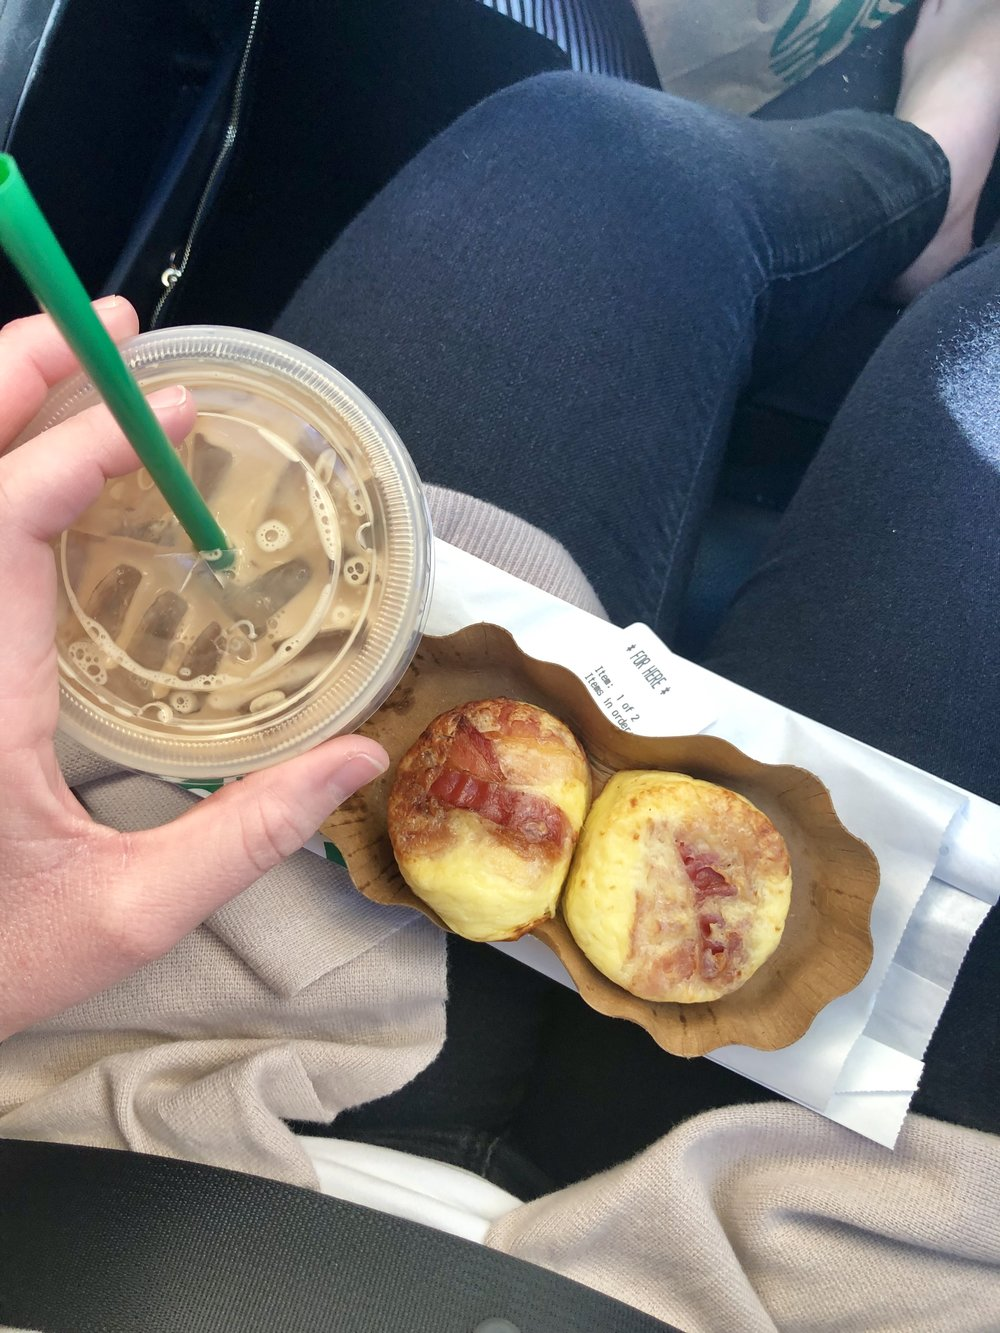 I got bacon egg bites with a iced latte with 1/2 and 1/2